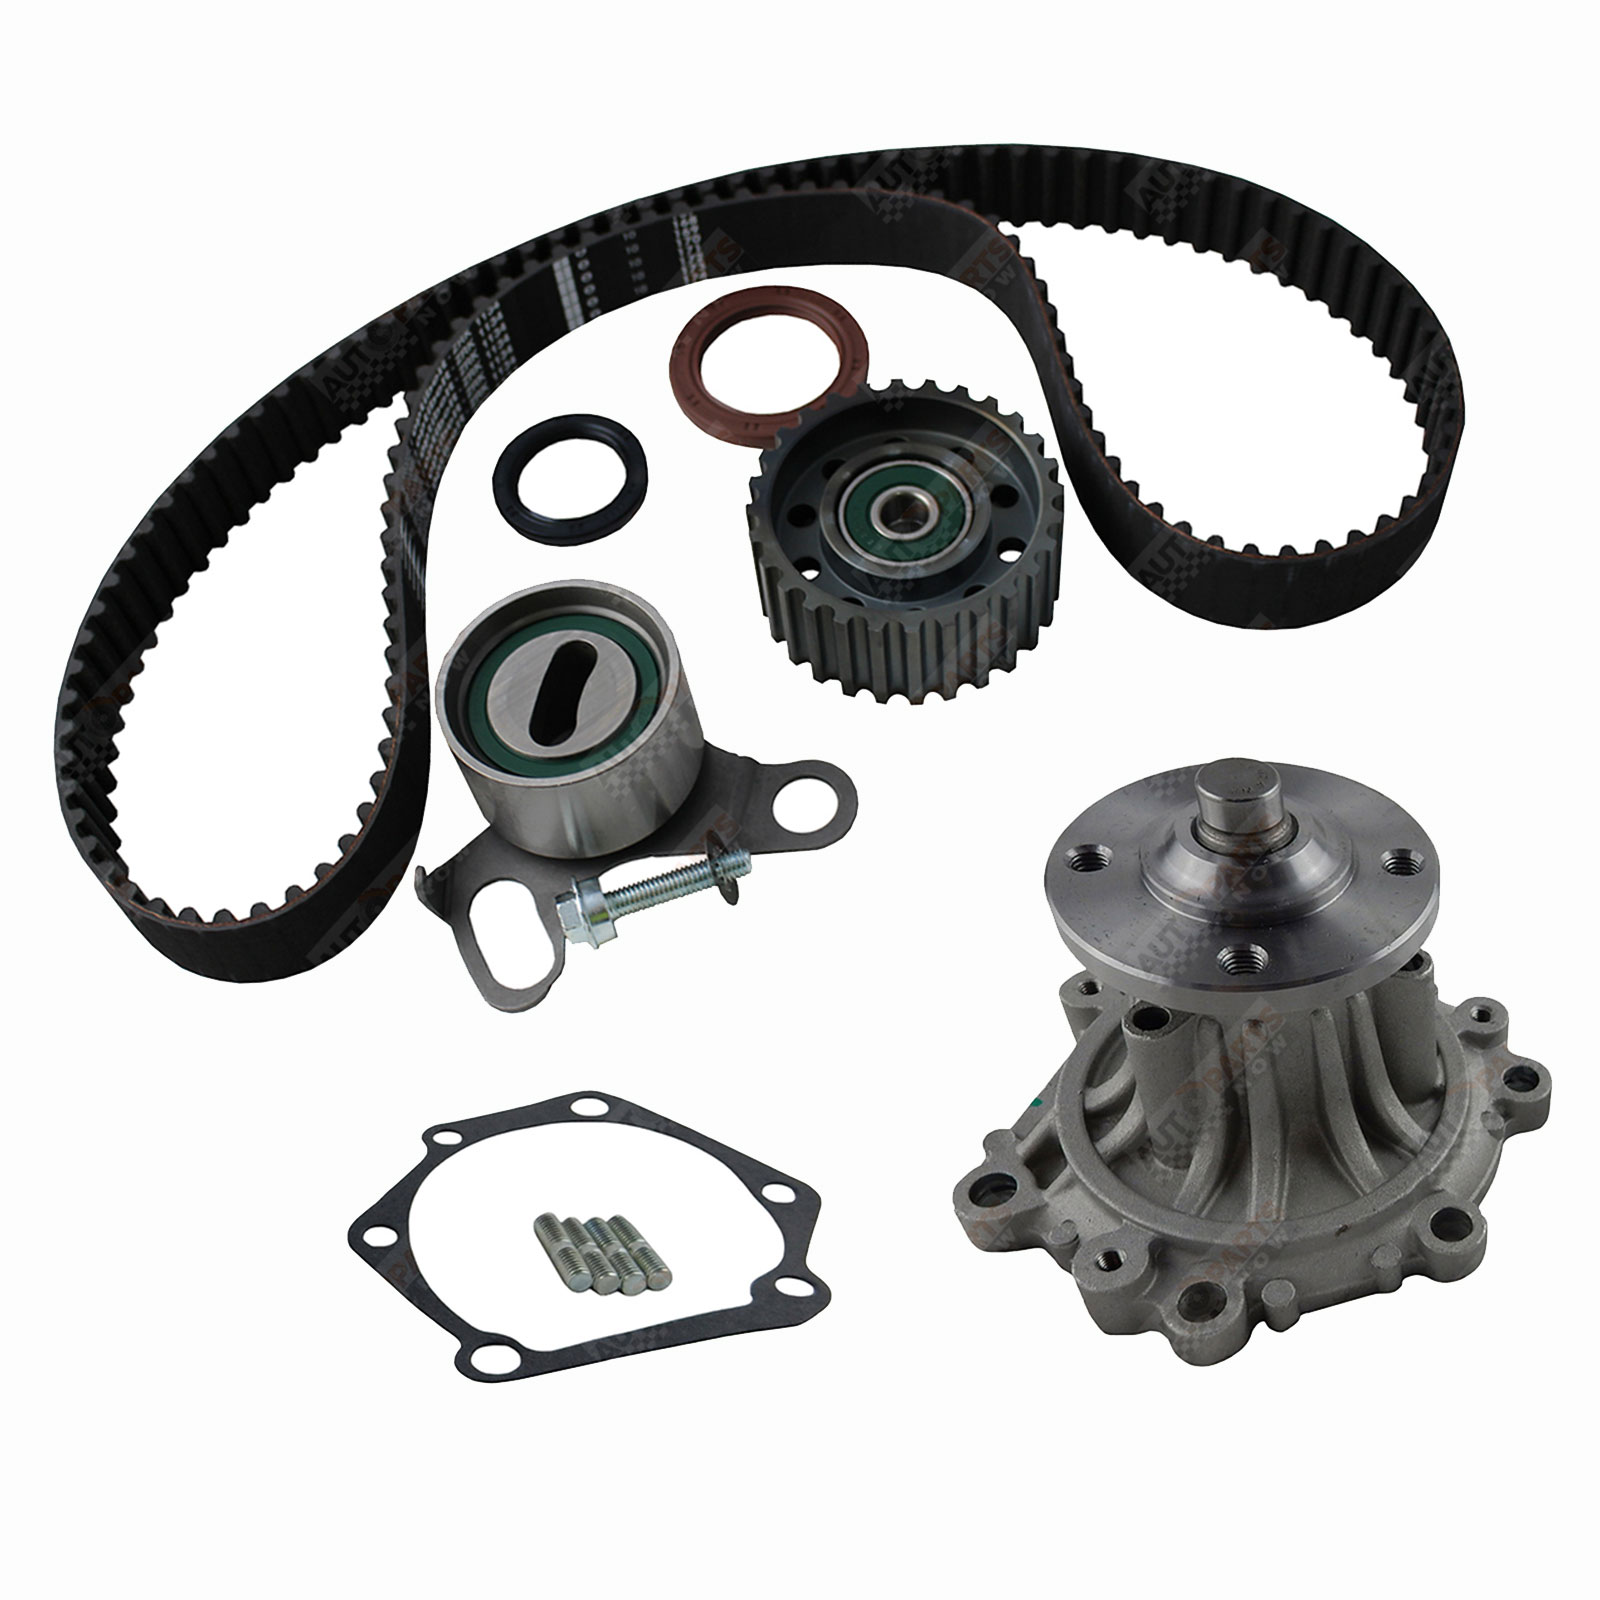 hight resolution of details about timing belt kit plus water pump toyota hilux ln85r ln86r ln106r ln107r ln111r